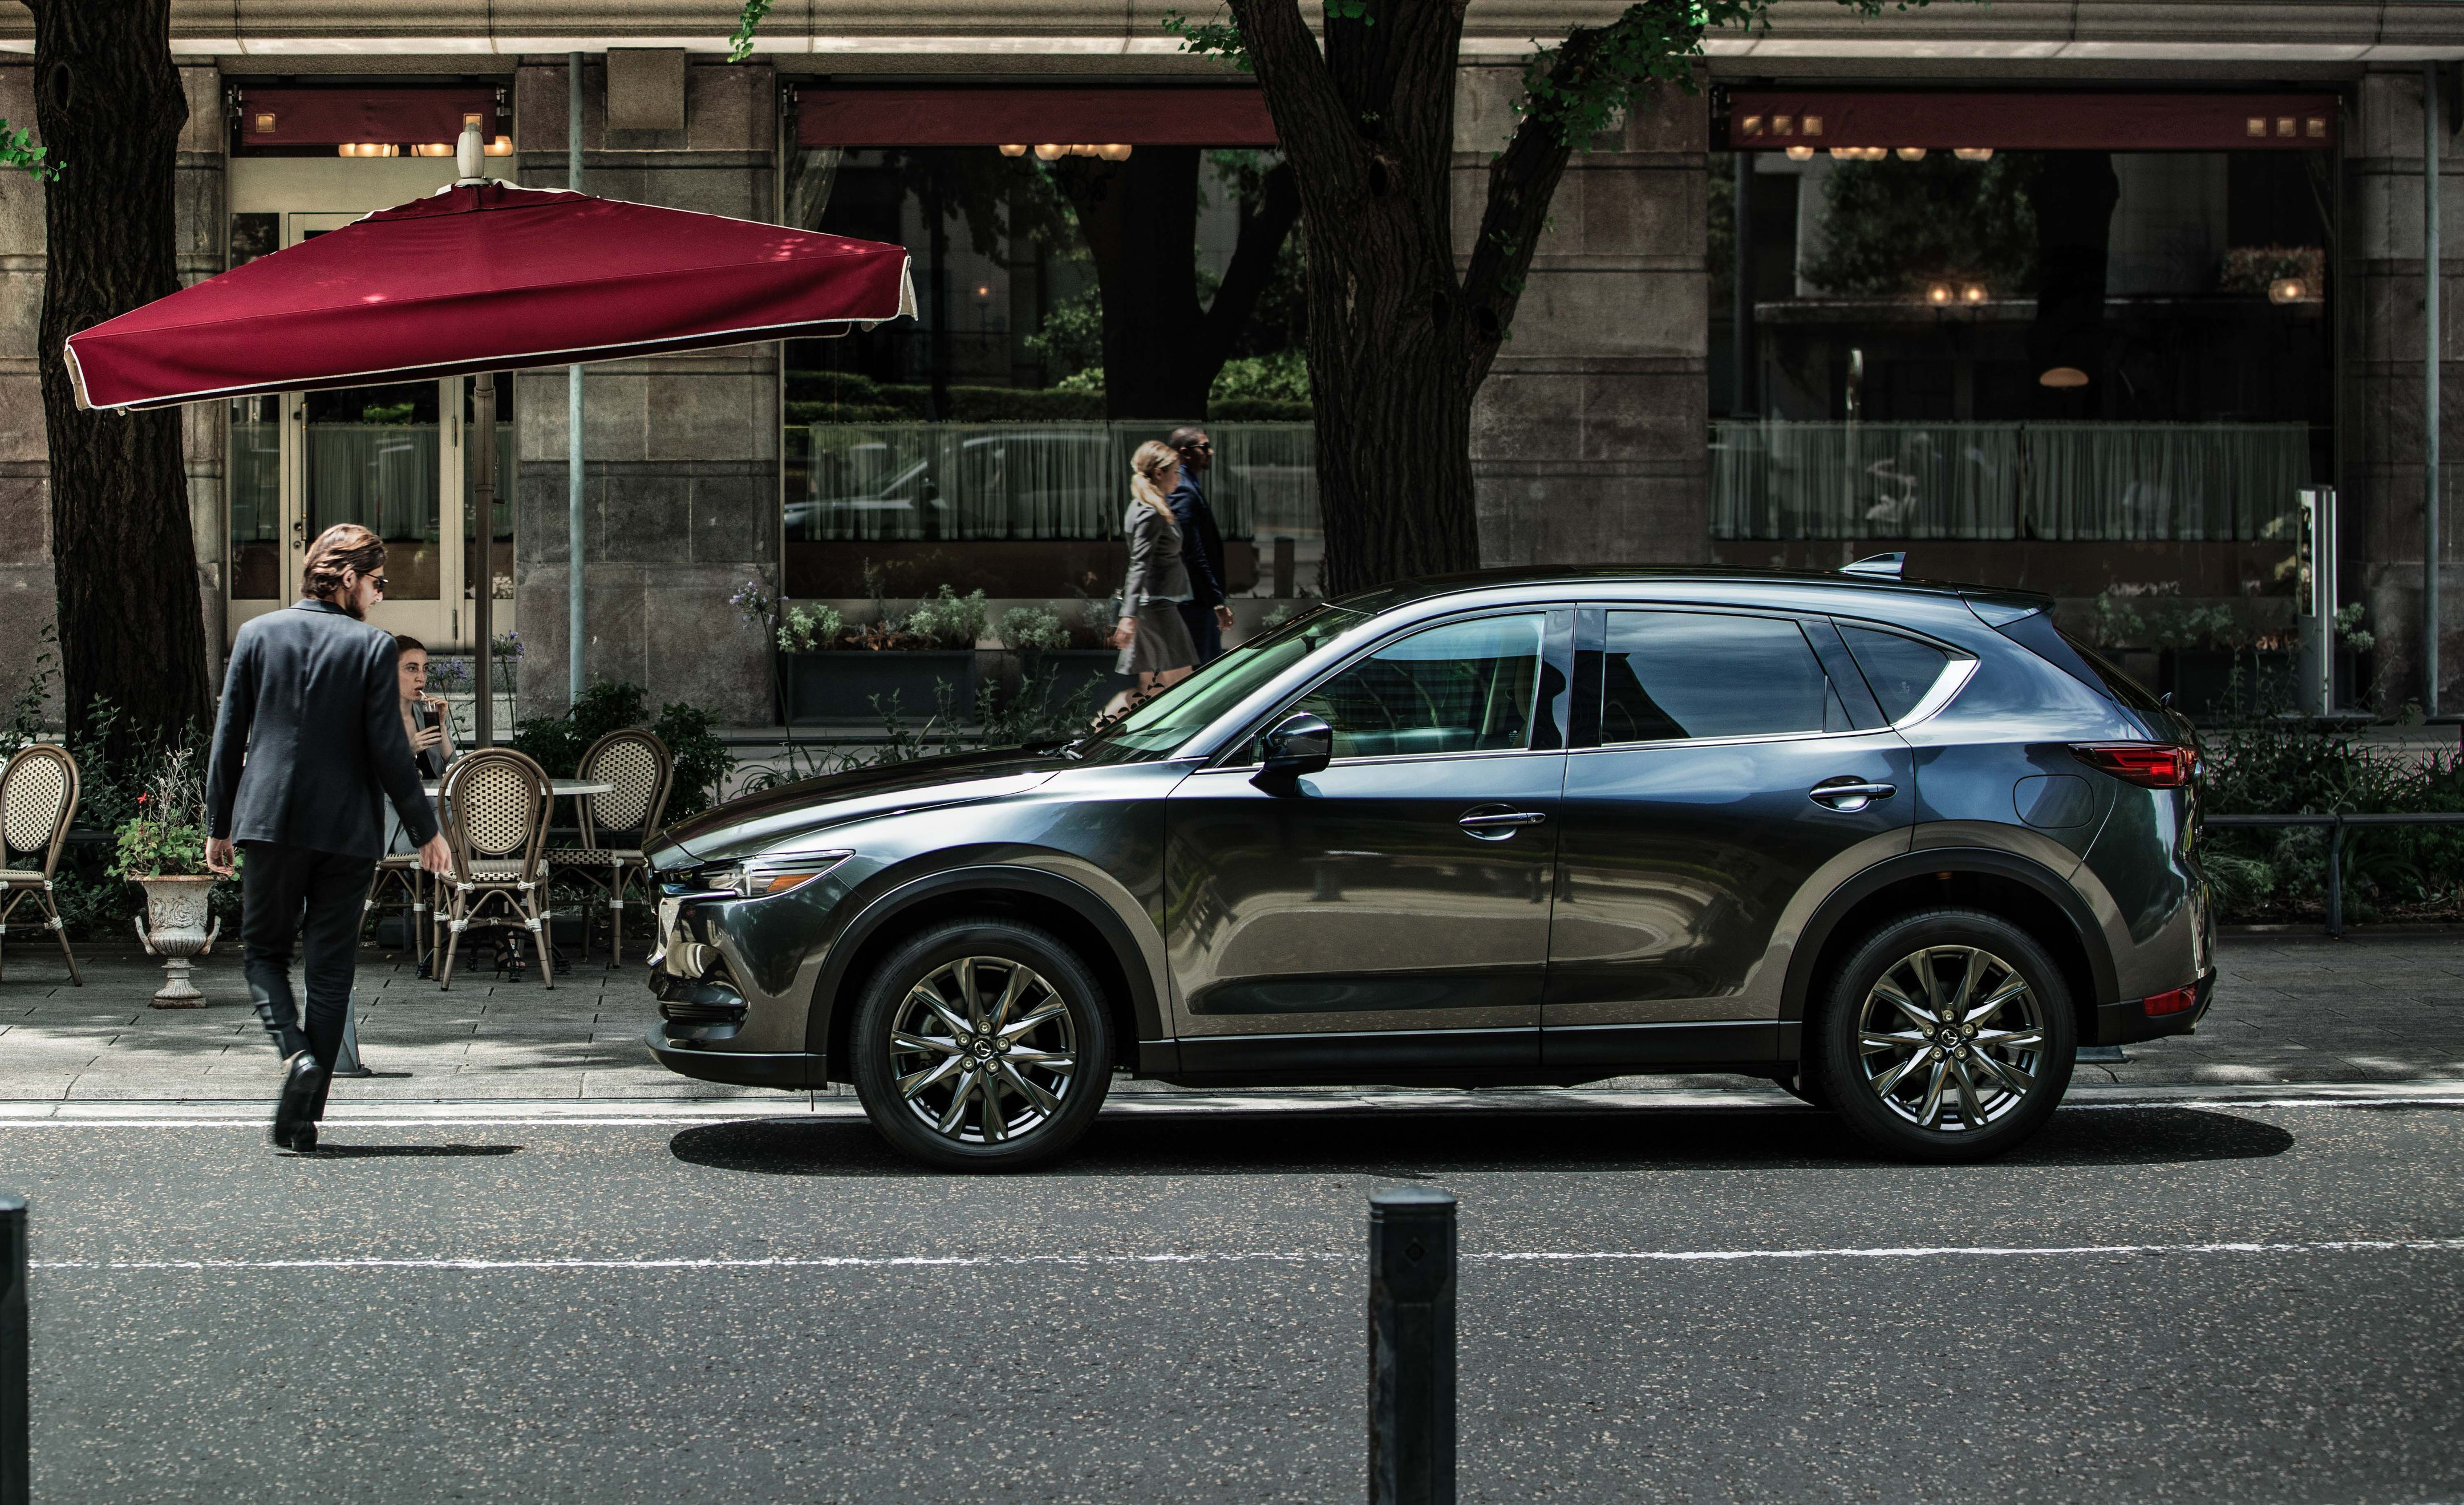 2019 Mazda Cx 5 Review Specs And Release Date Redesign Price And Review Concept Redesign And Review Release Date Price And Re Mazda Cars Mazda Mazda Cx5